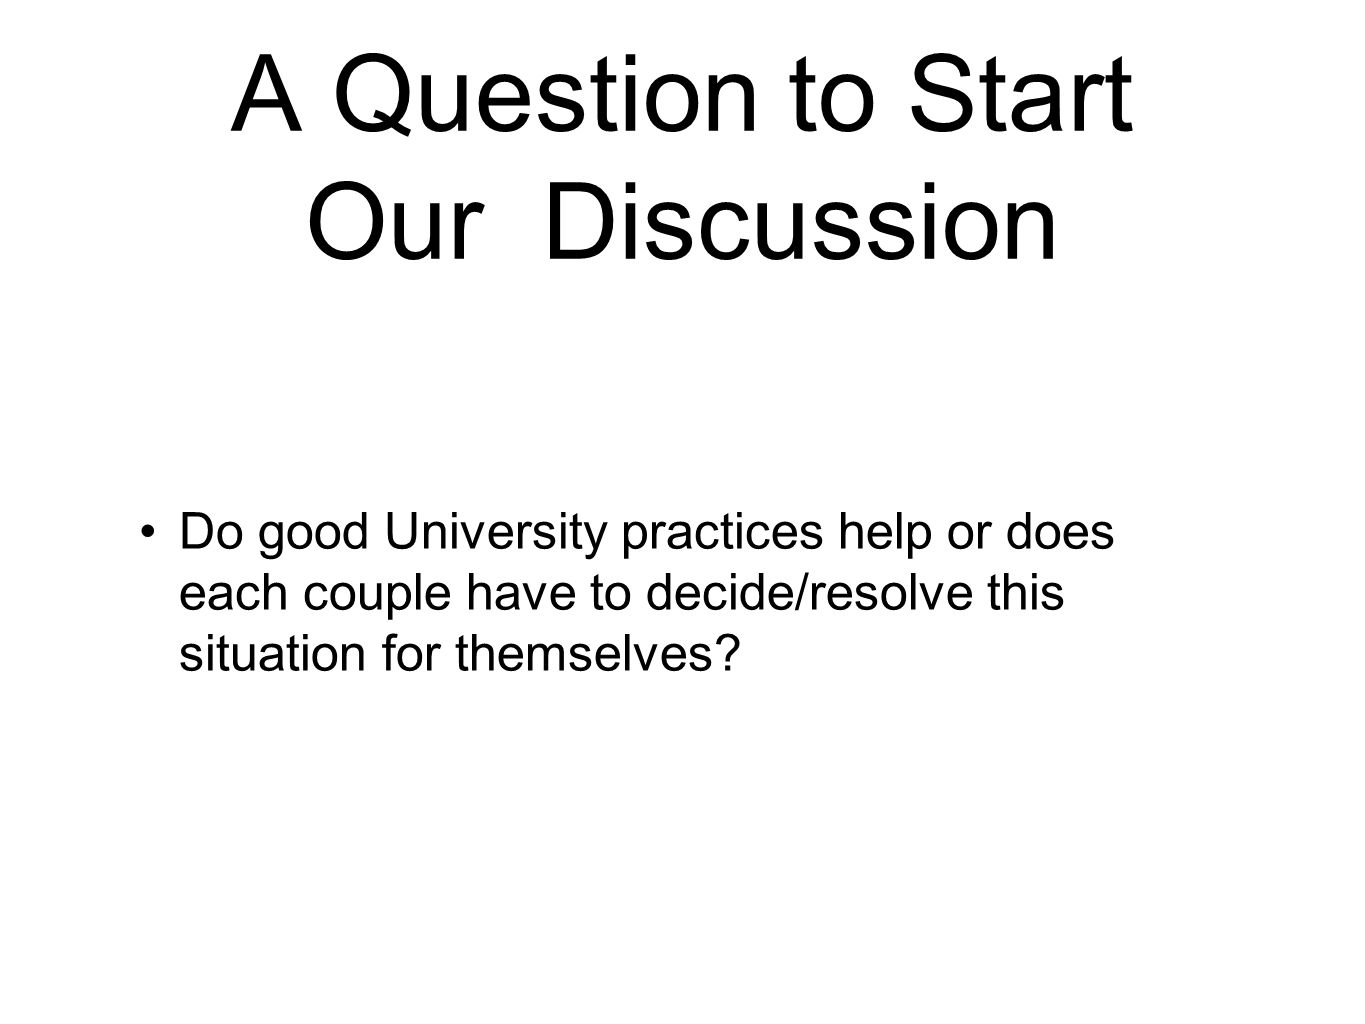 A Question to Start Our Discussion Do good University practices help or does each couple have to decide/resolve this situation for themselves